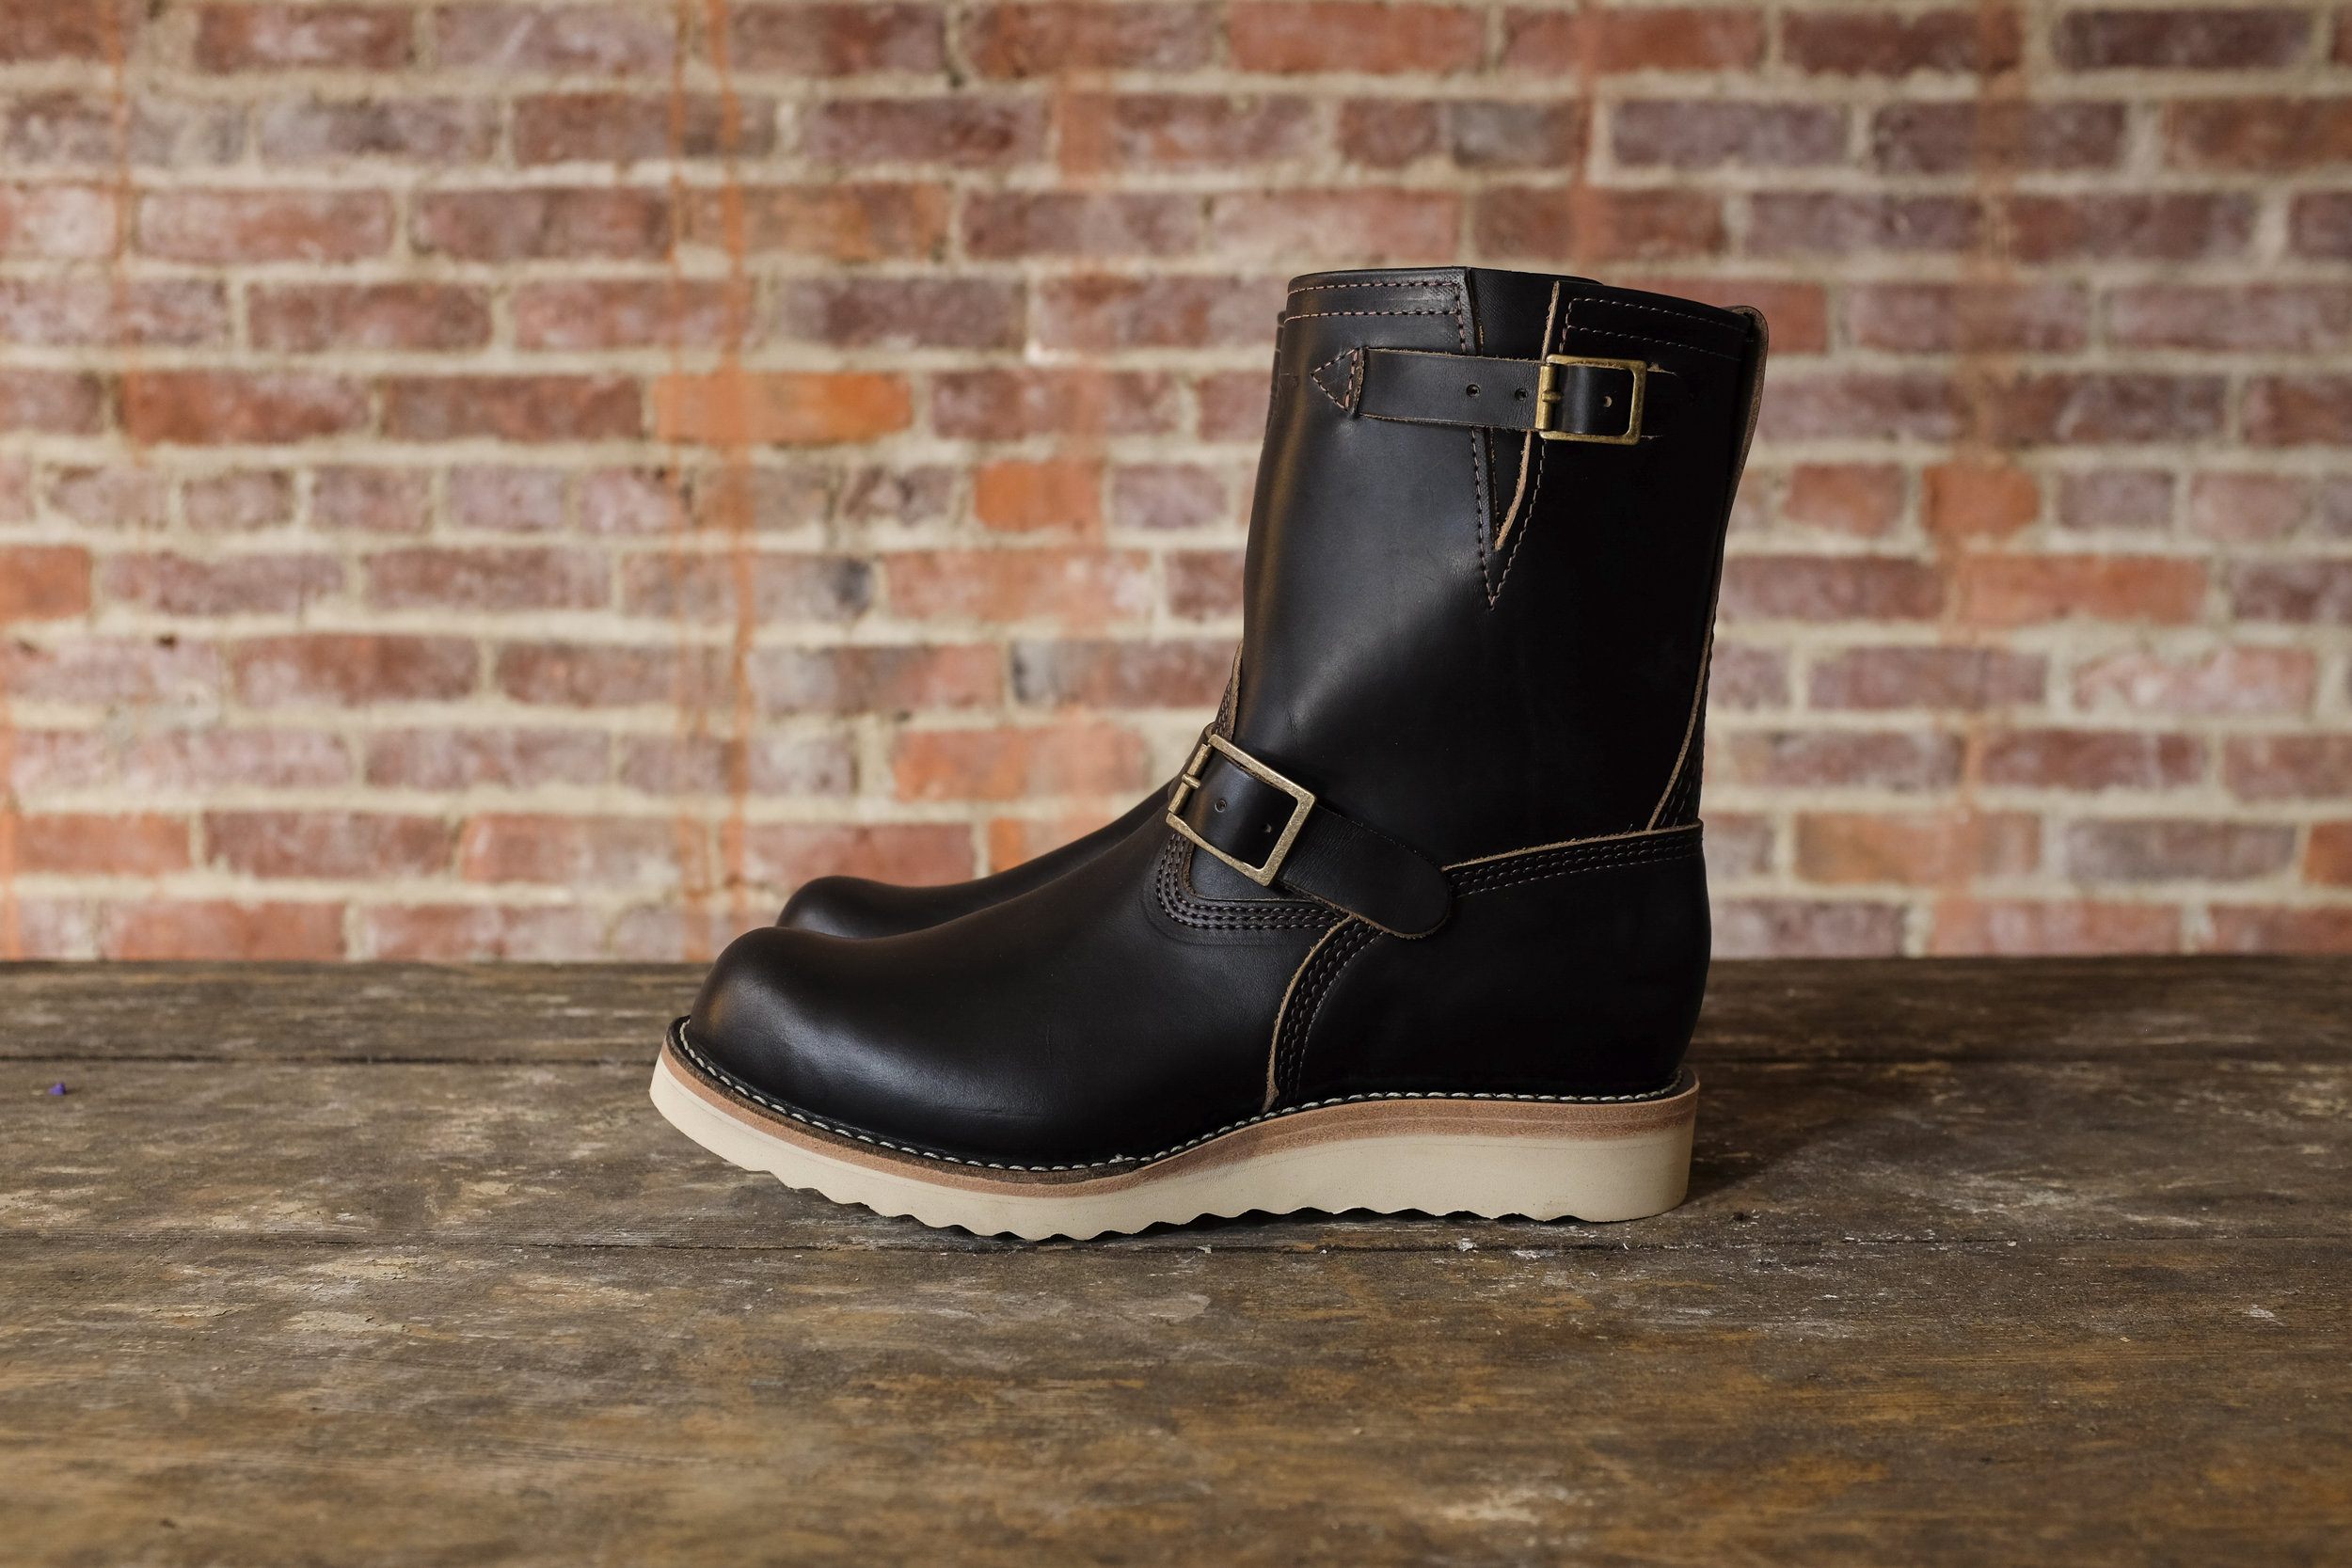 Black Bear Brand x Wesco BOSS with Horween Leather